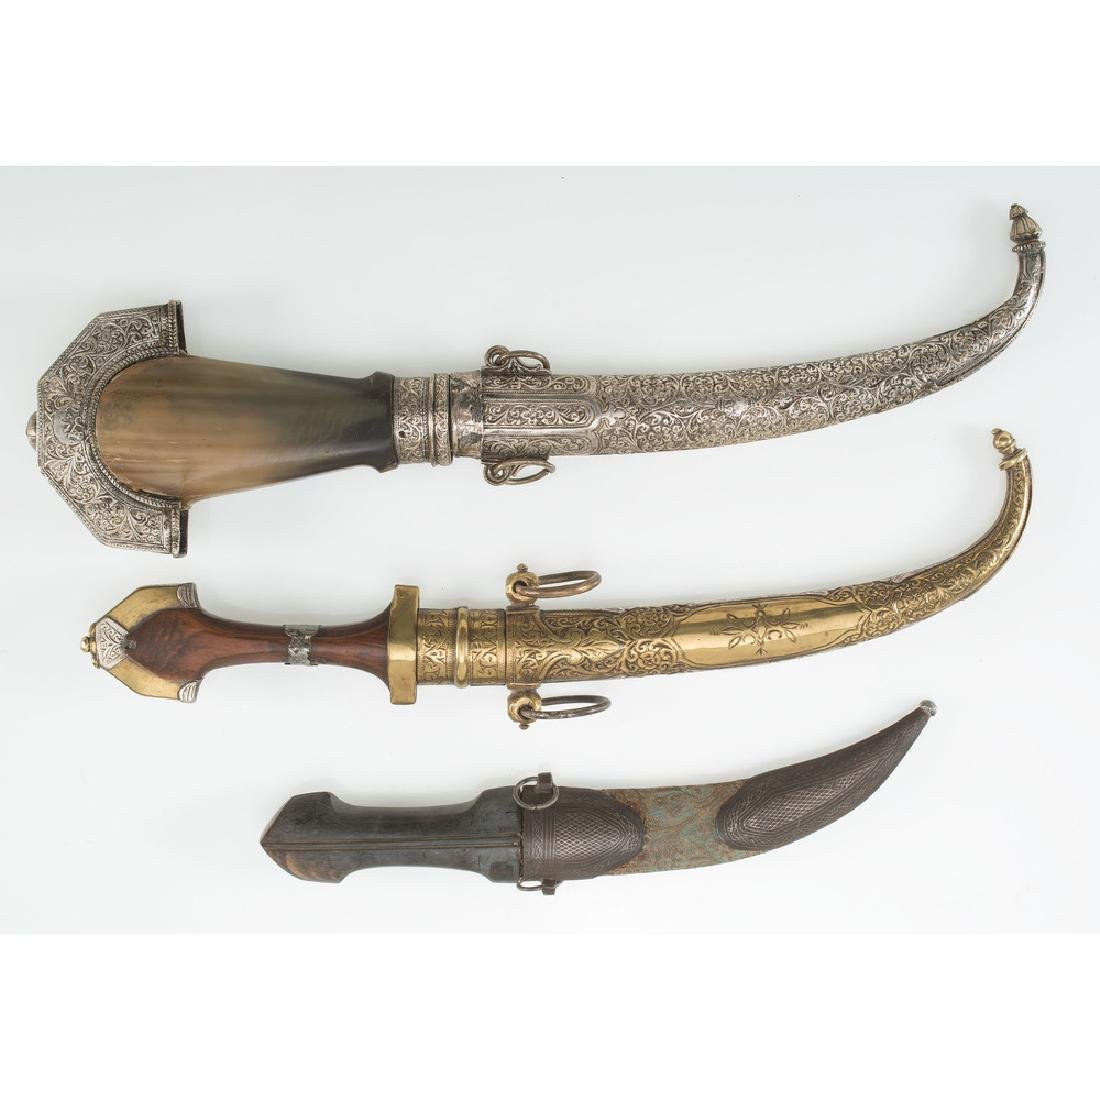 3 Curved Blade Moroccan Daggers - 2